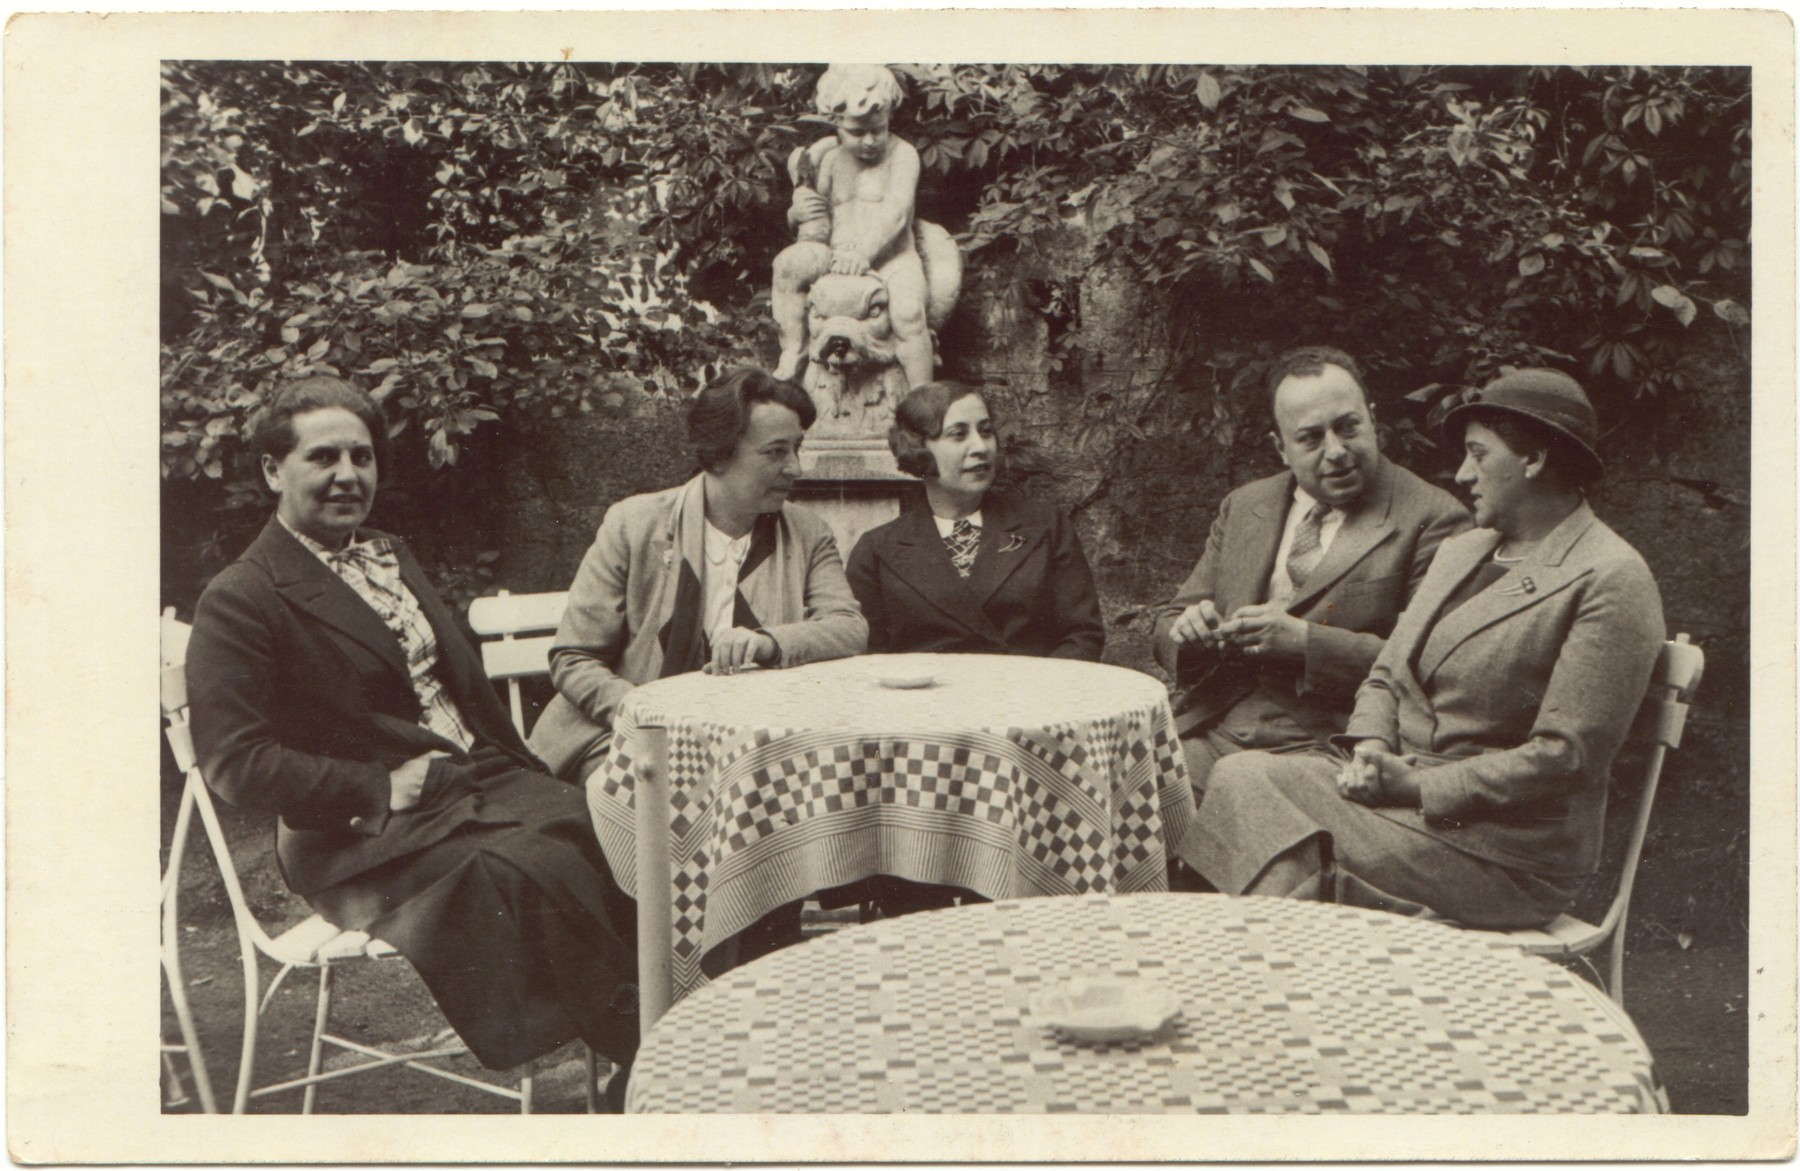 A German Jewish family sits around an outdoor table.  From left to right: ?. Lidi Gruenthal Dzialowski, Gerta Gruenthal, Adolph Gruenthal, and Bertha Gruenthal.